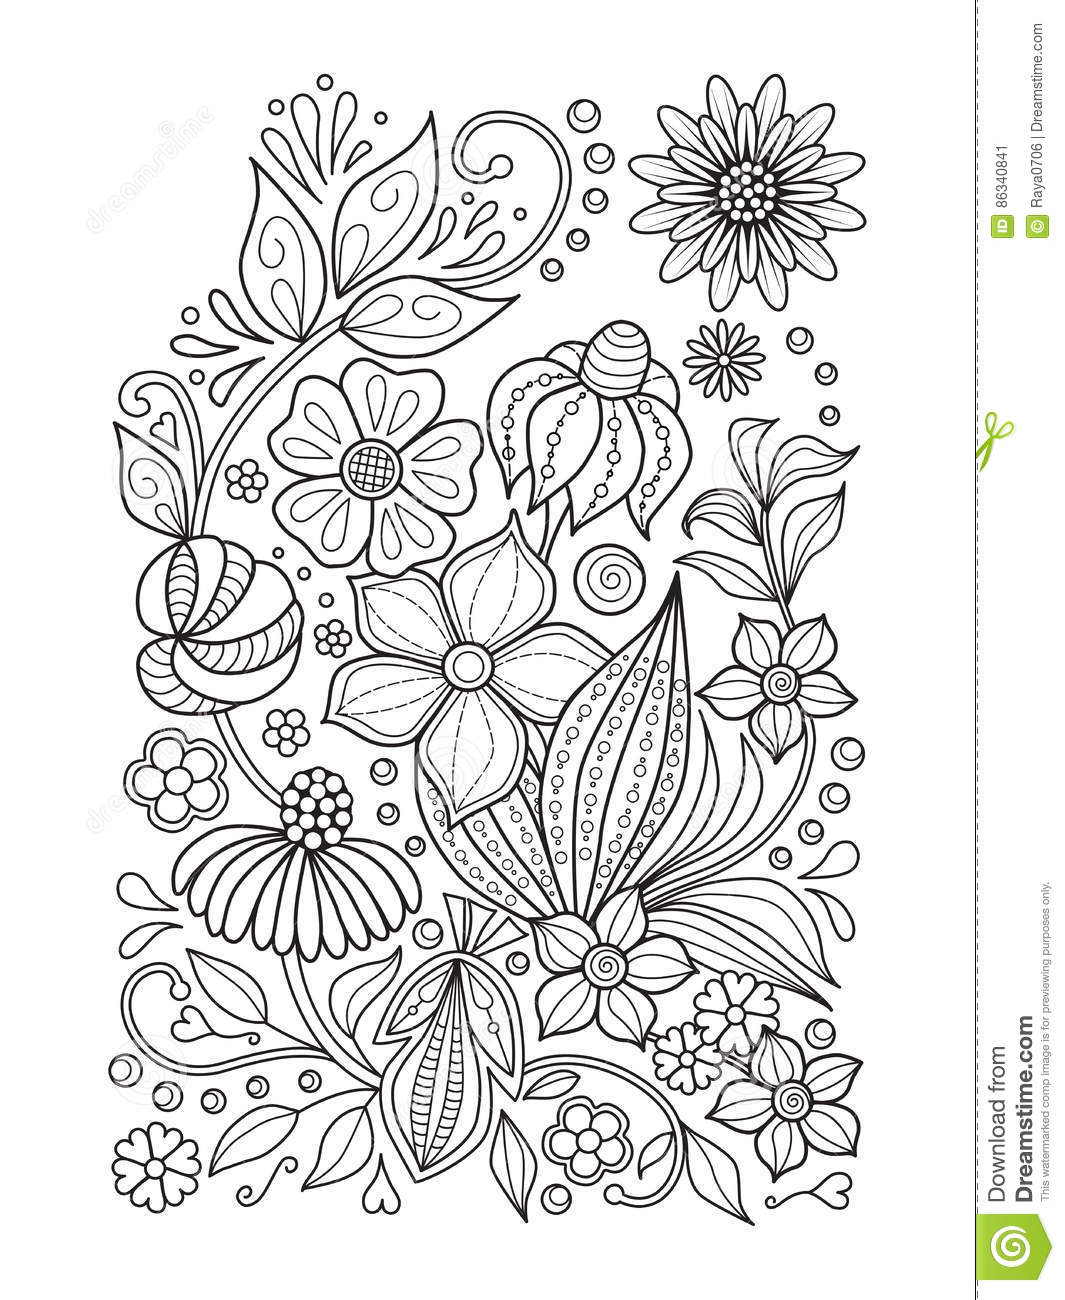 Doodle Floral Pattern In Black And White. Page For